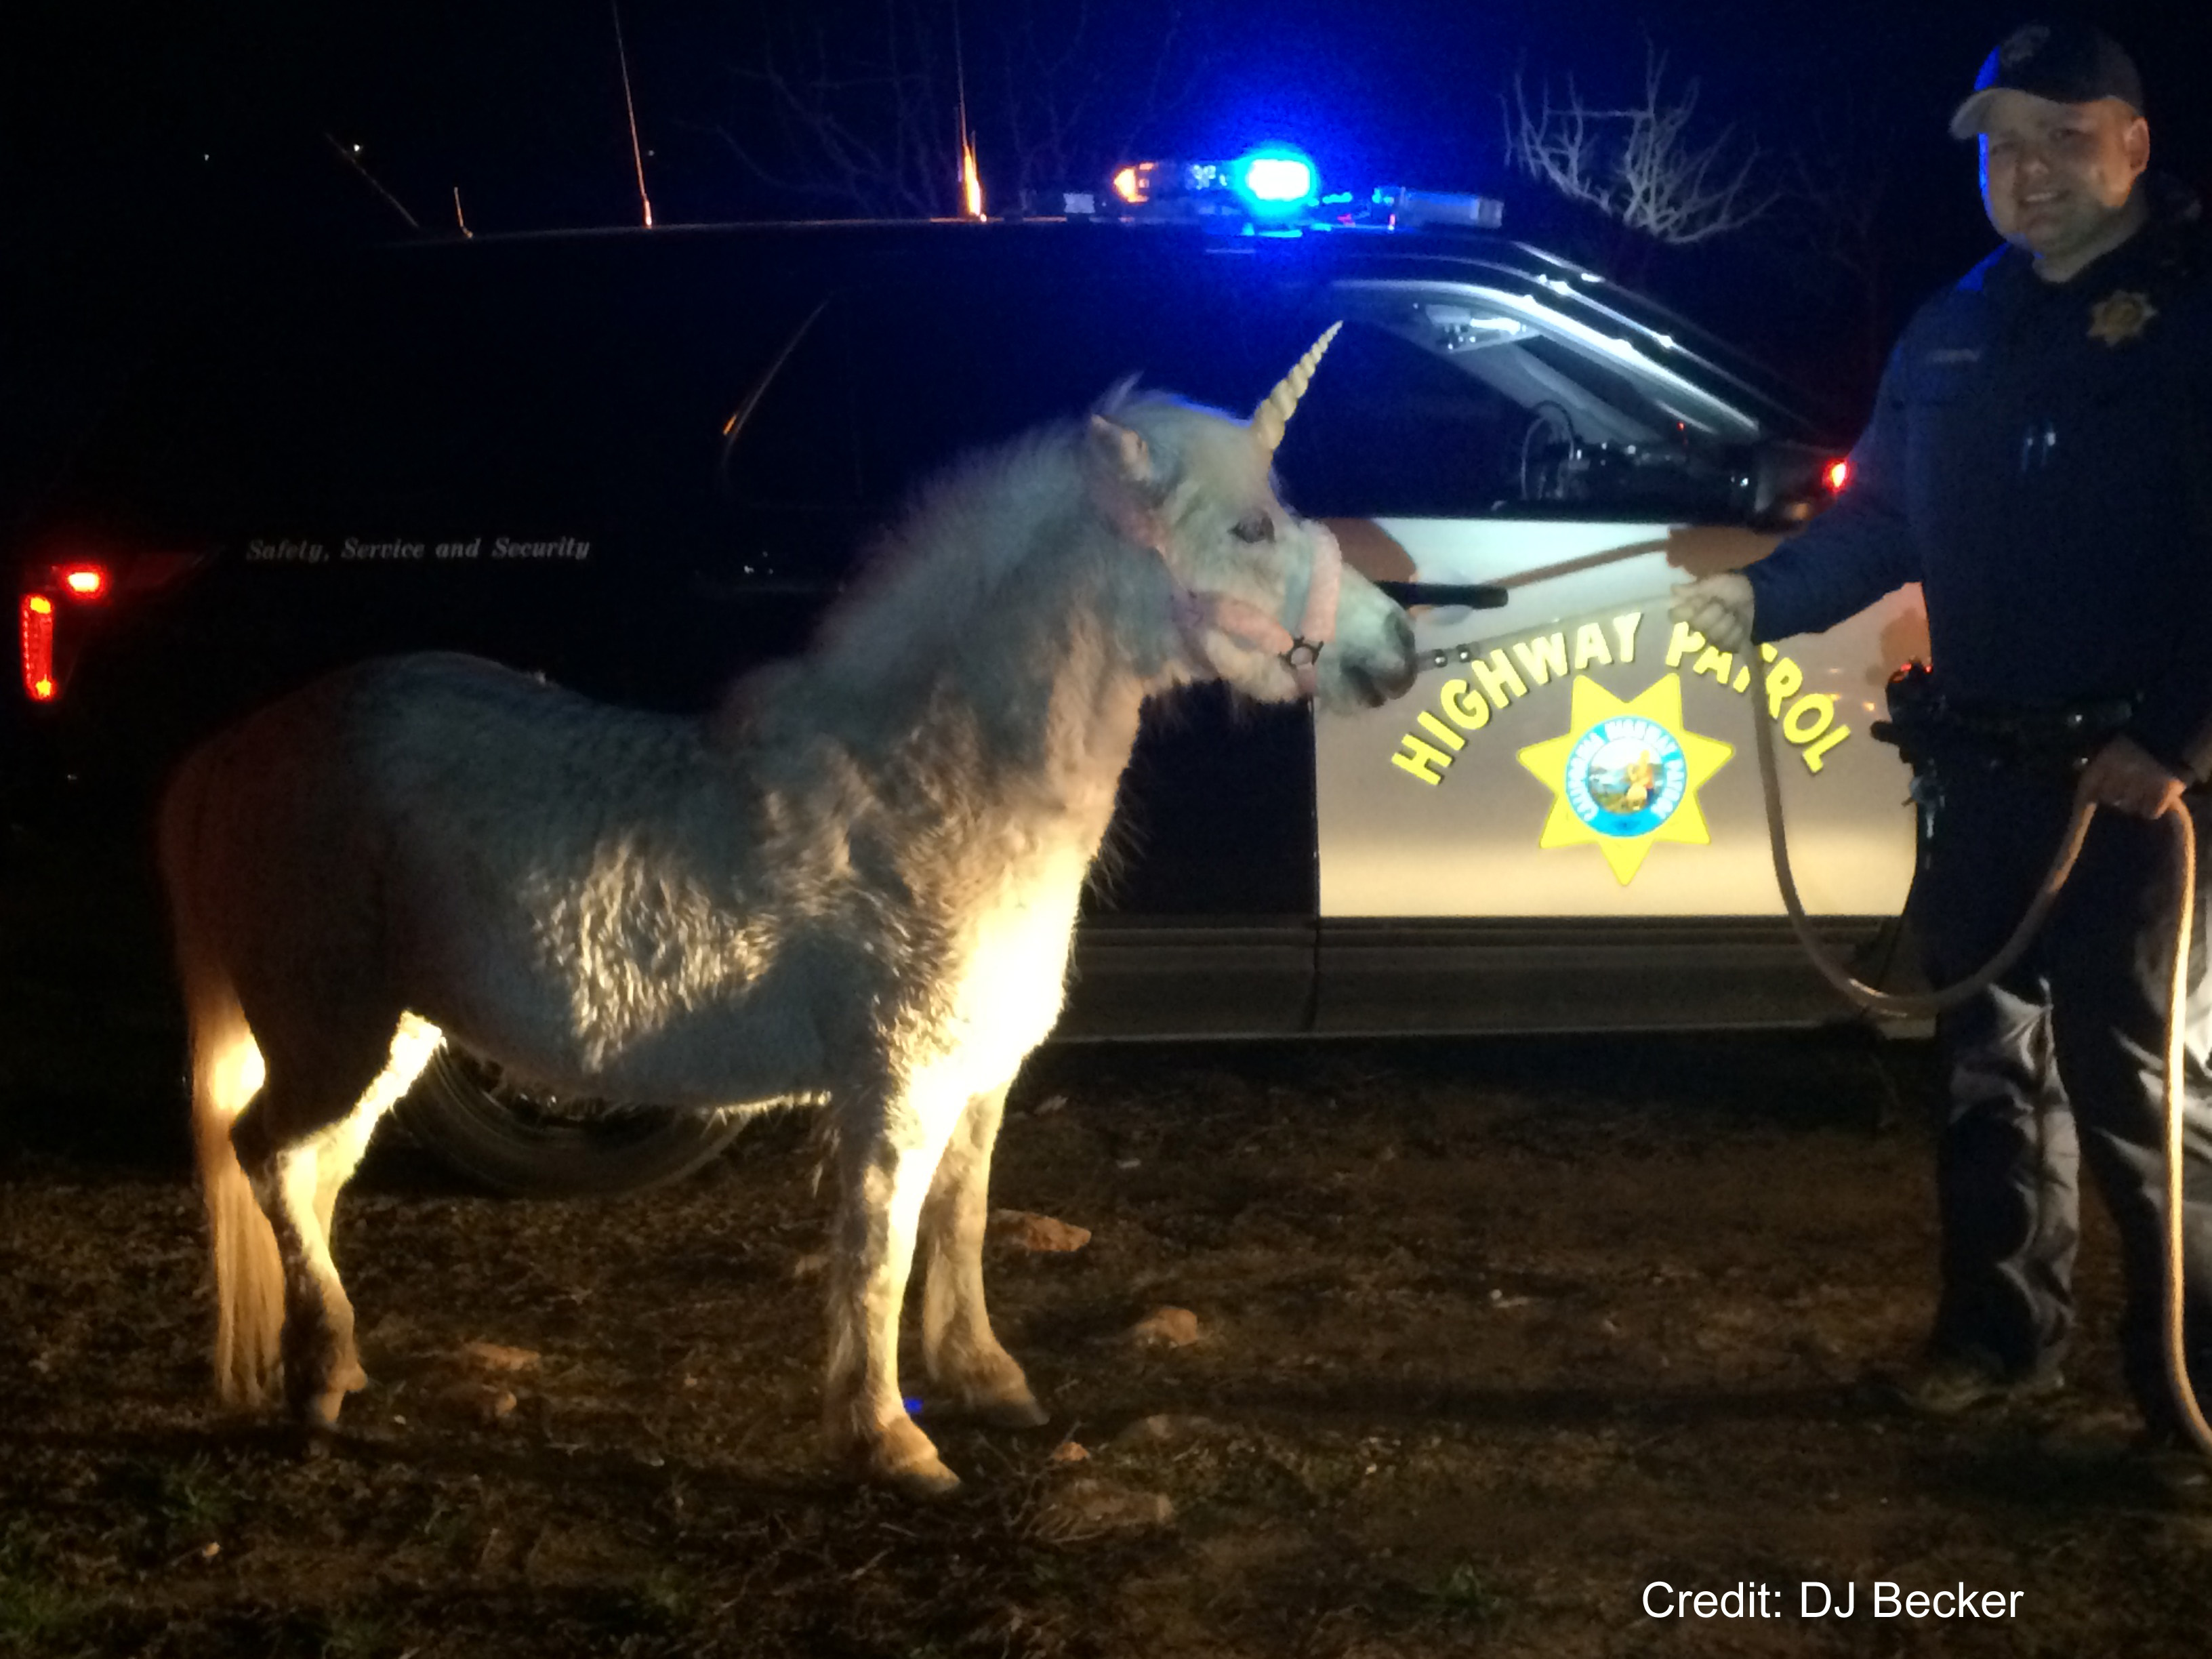 A pony dressed up like a unicorn for a child's birthday party broke loose and had to be located by CHP in Madera, Calif. Feb. 25, 2016.